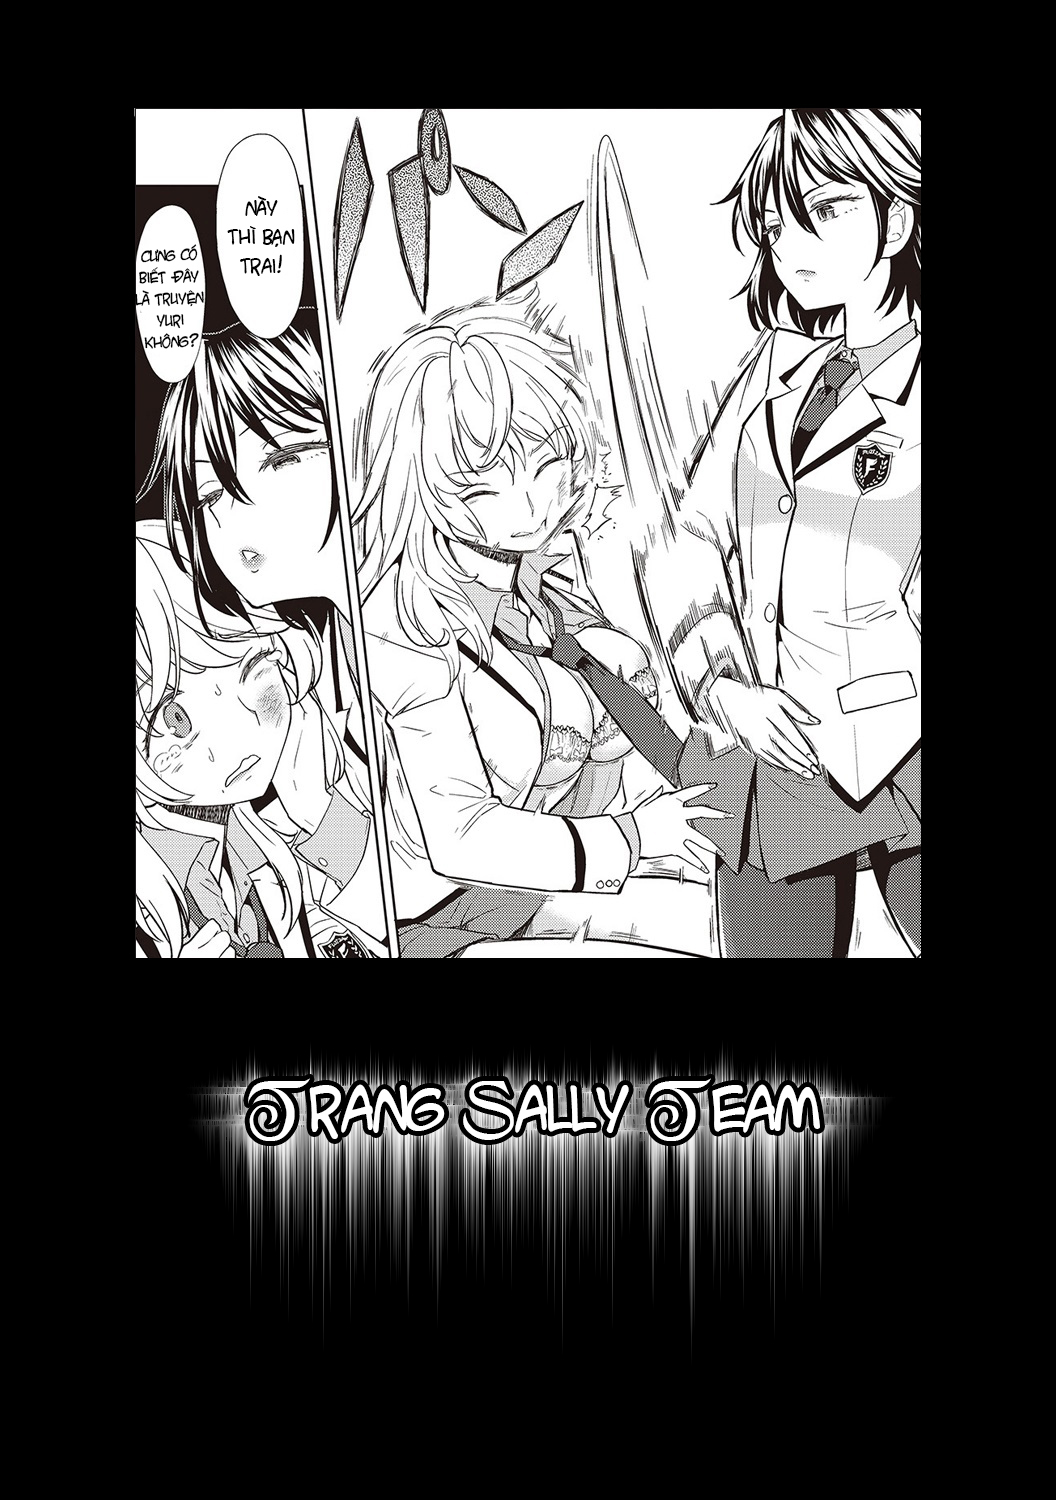 Tuyển tập yuri oneshot chap 88: if a lie is not told, it cannot become yuri omake